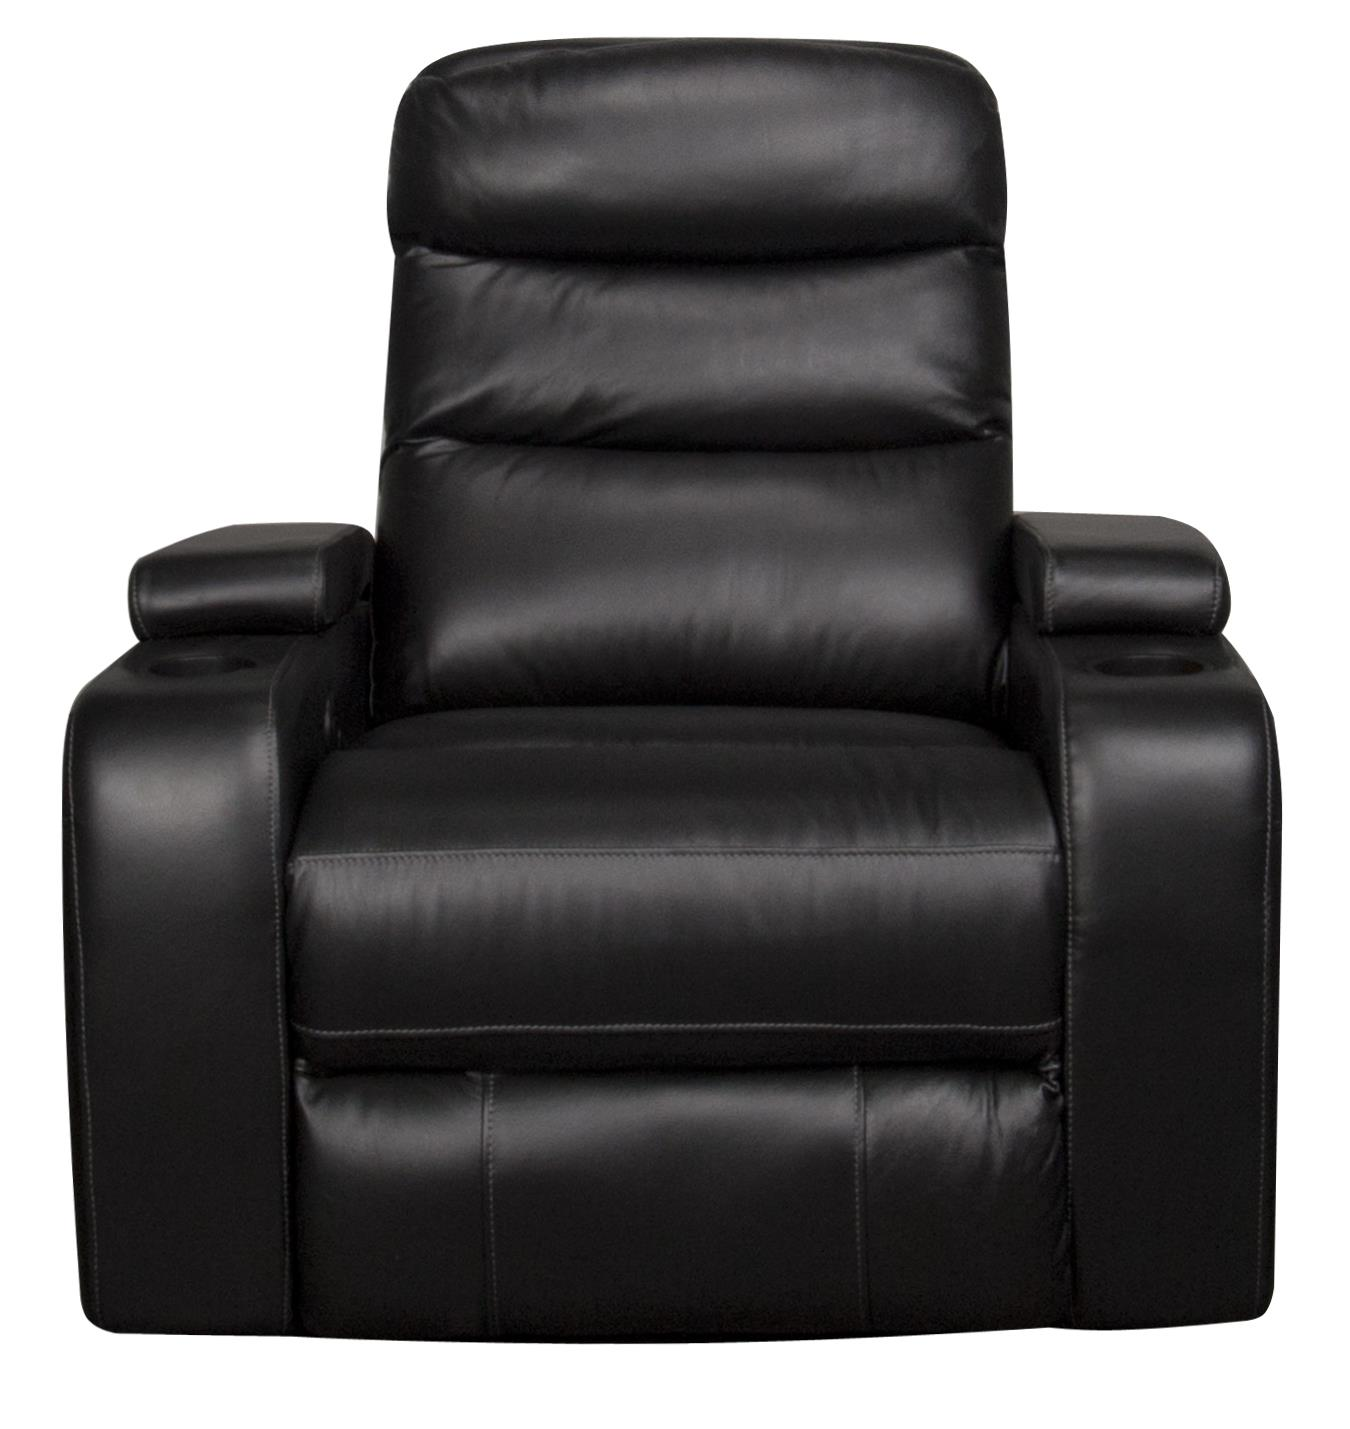 Morris Home Furnishings Robert  Robert Power Leather-Match* Recliner - Item Number: 399334360